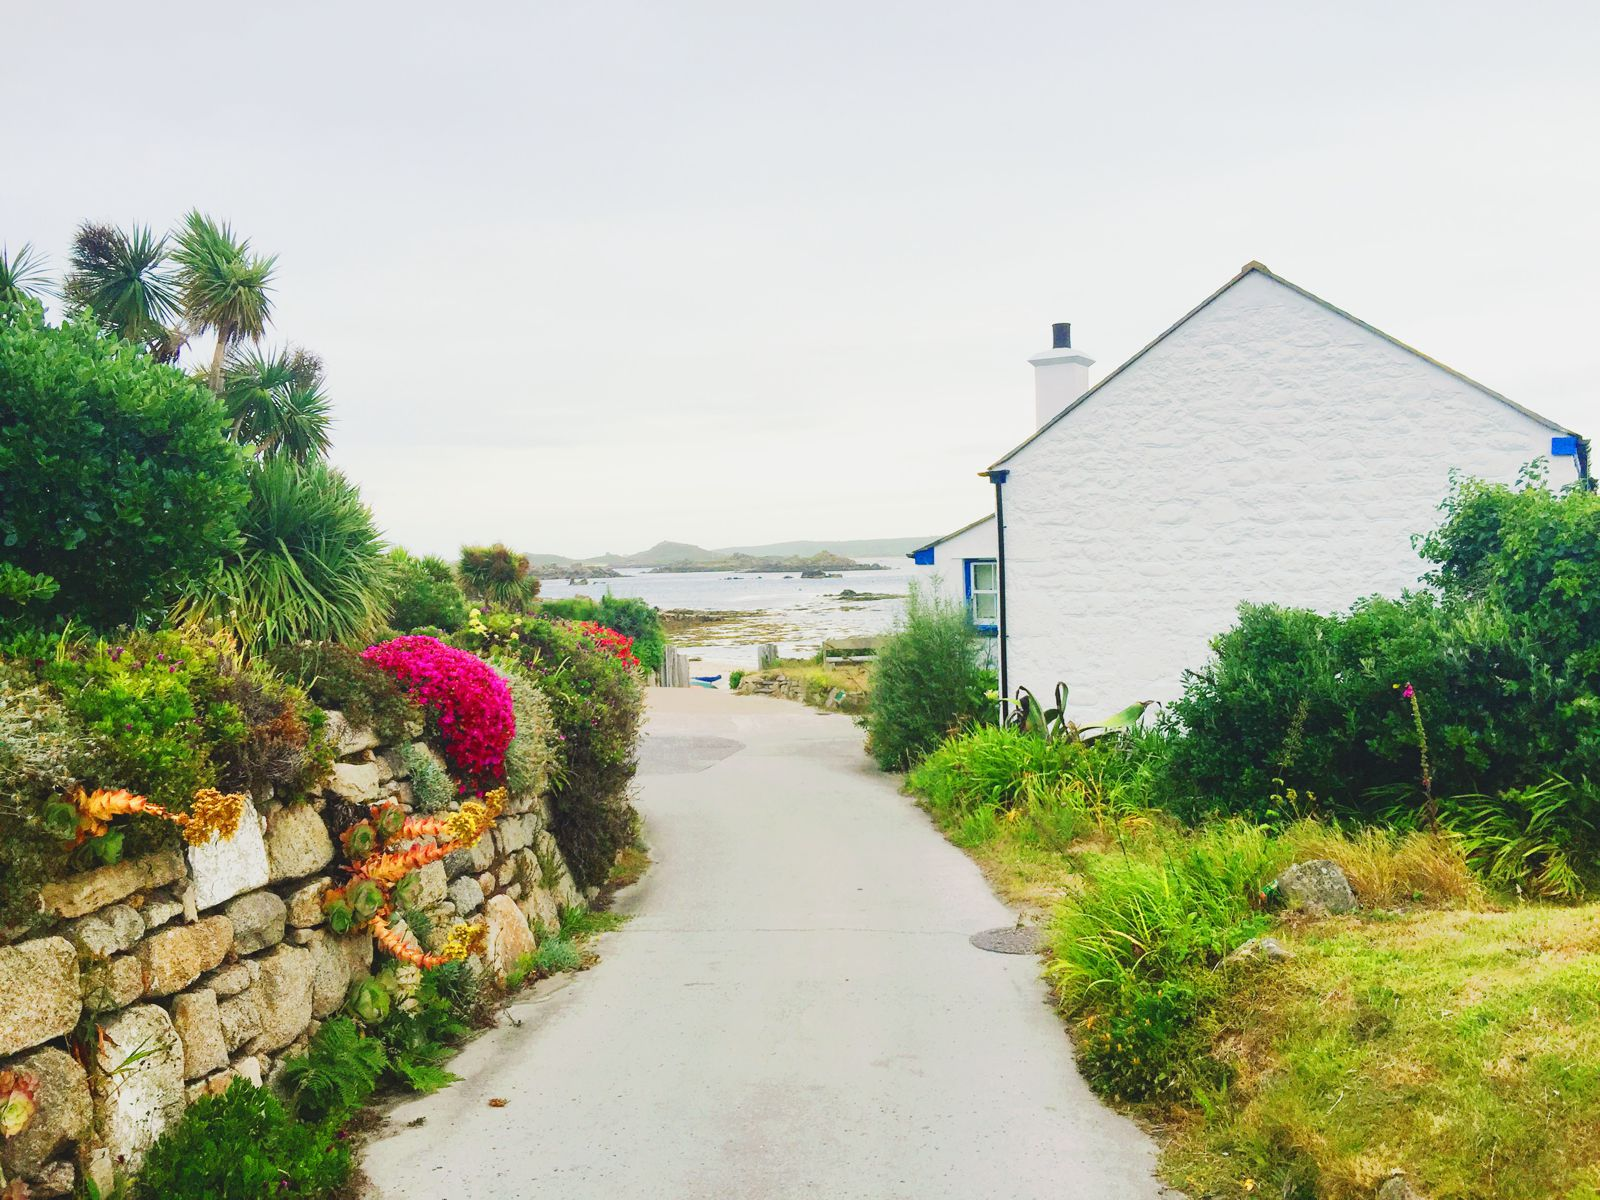 More Photos From The Isles Of Scilly... (19)